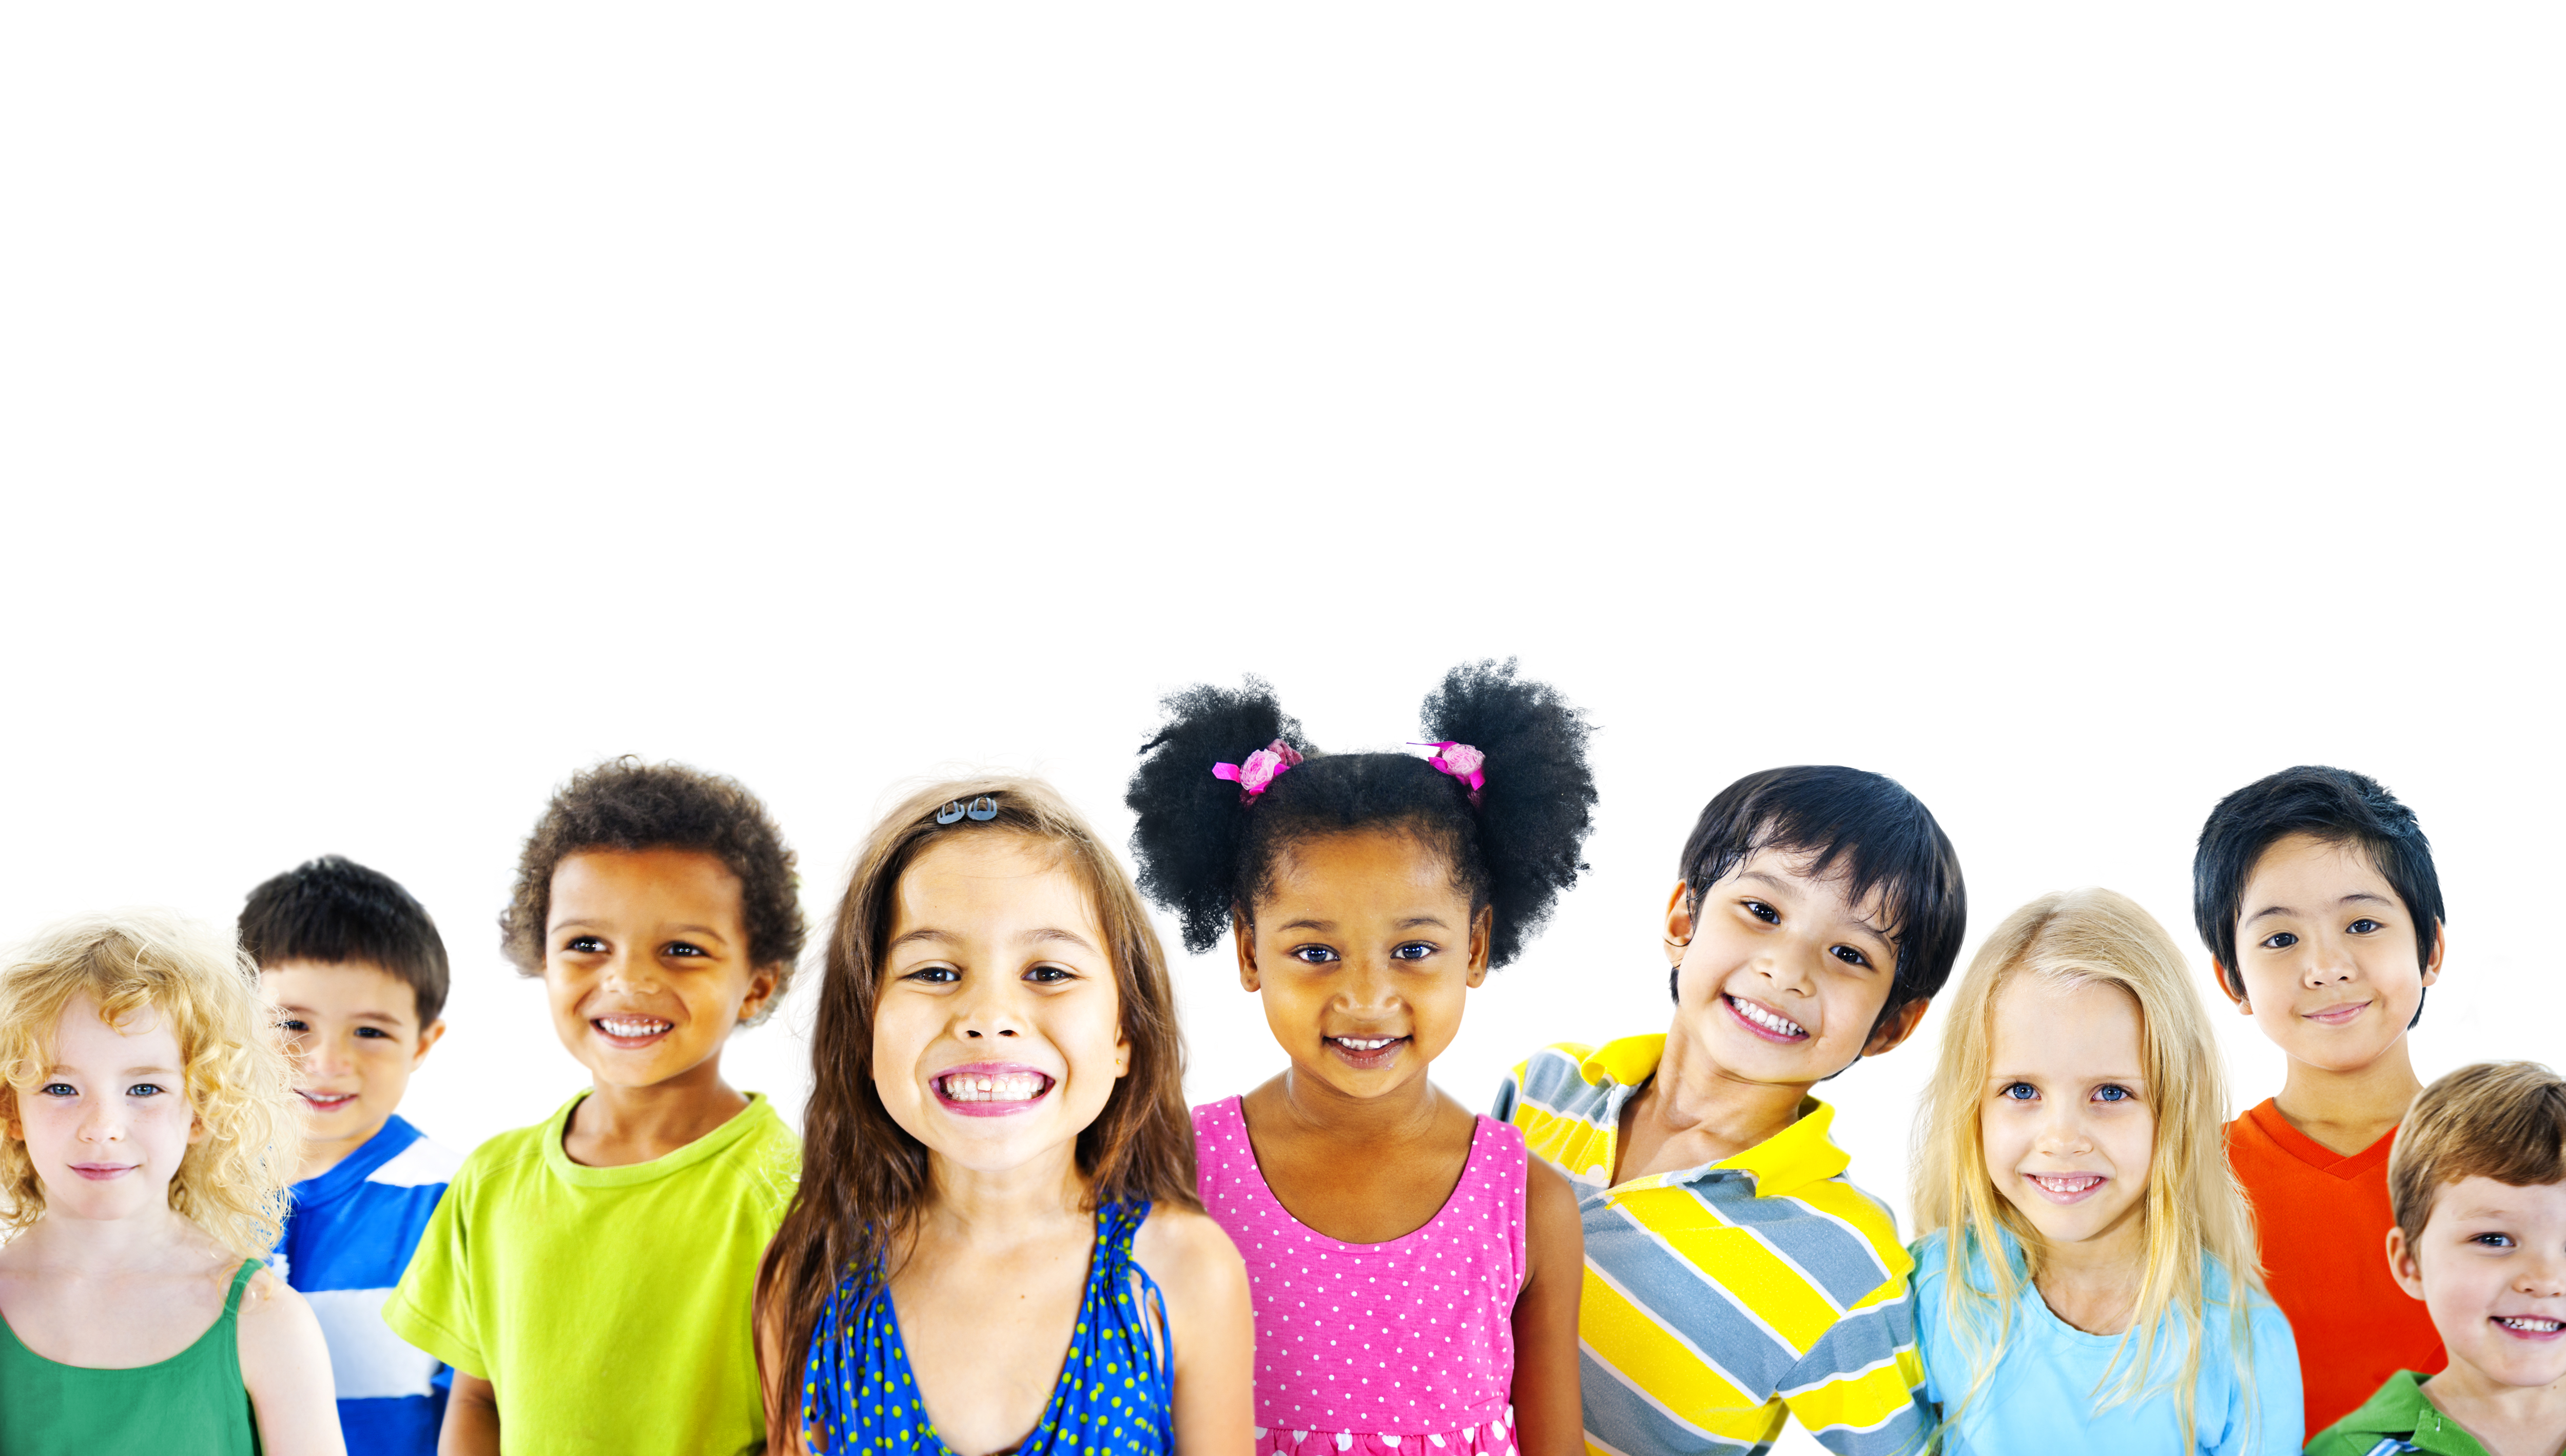 children smiling with healthy teeth